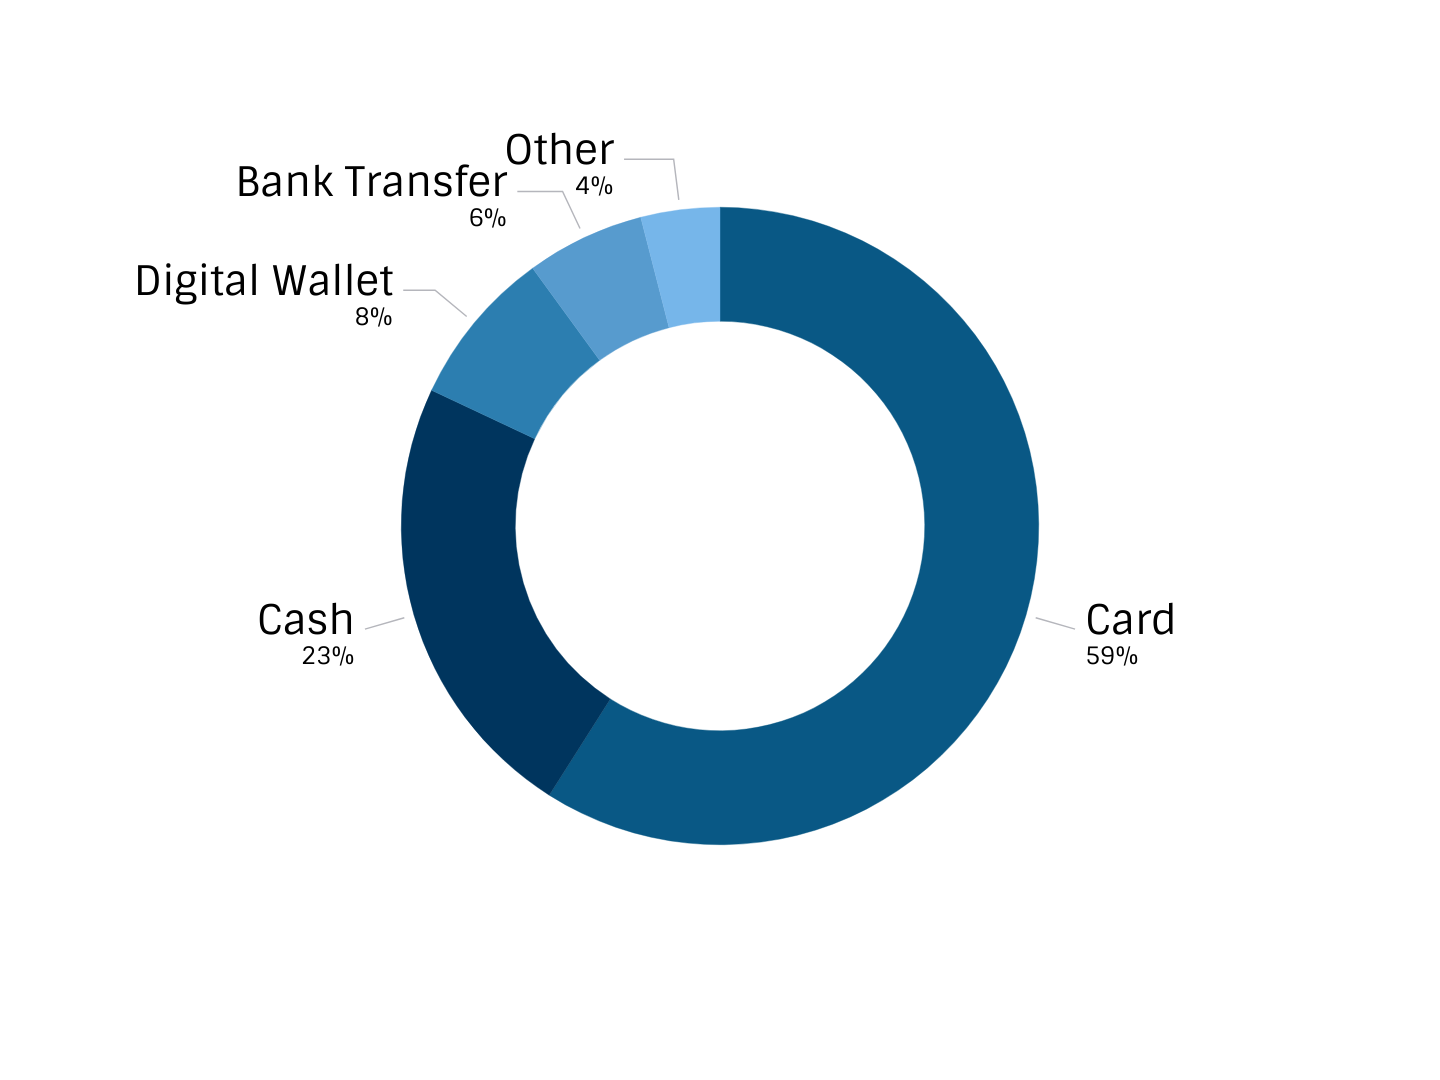 Pie chart showing the top payment methods.